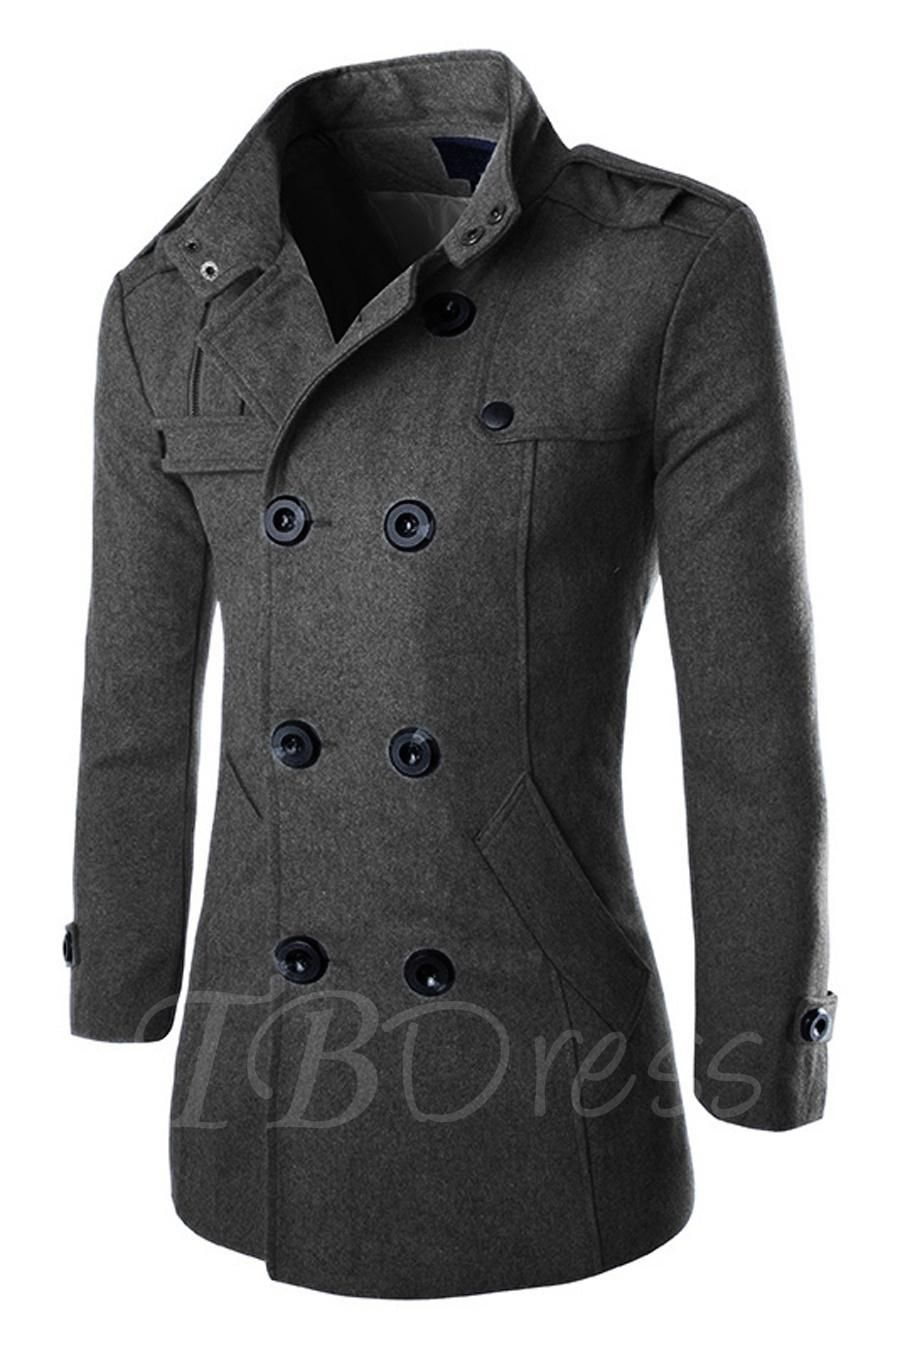 9e4e1967aaa6  TBDress -  TBDress Notched Collar Mens Pure Color Pea Coat - AdoreWe.com